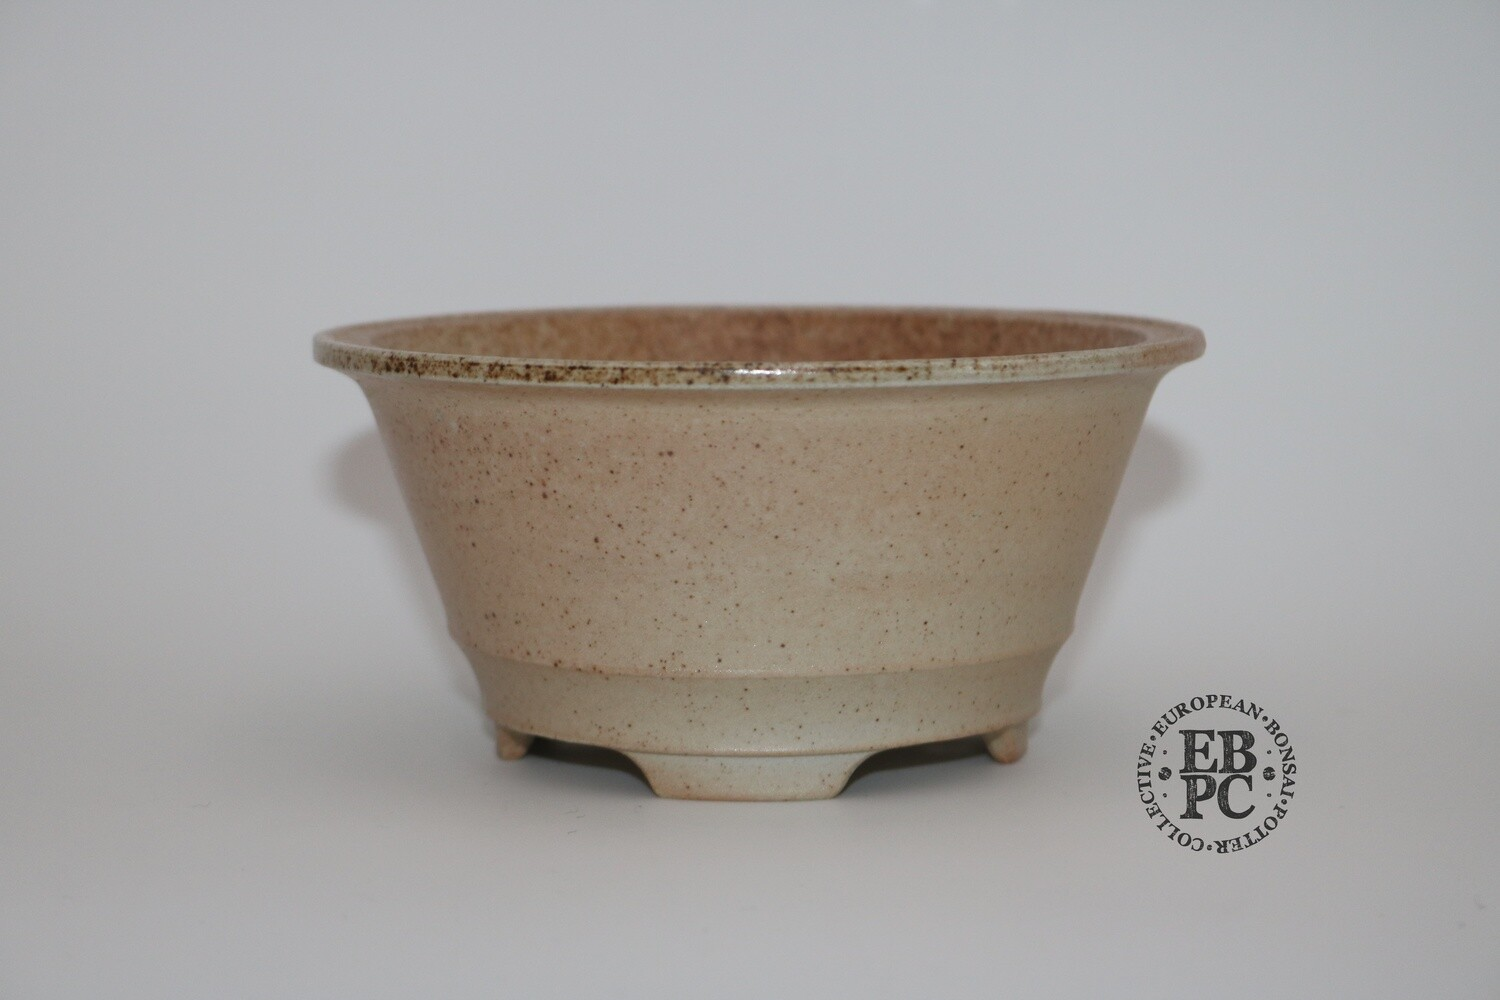 Gramming Pots - 13.1cm; 'Supreme Simplicity; Round; Unglazed; White; Light Brown; Wood-fired; Recessed feet; Tomas Gramming